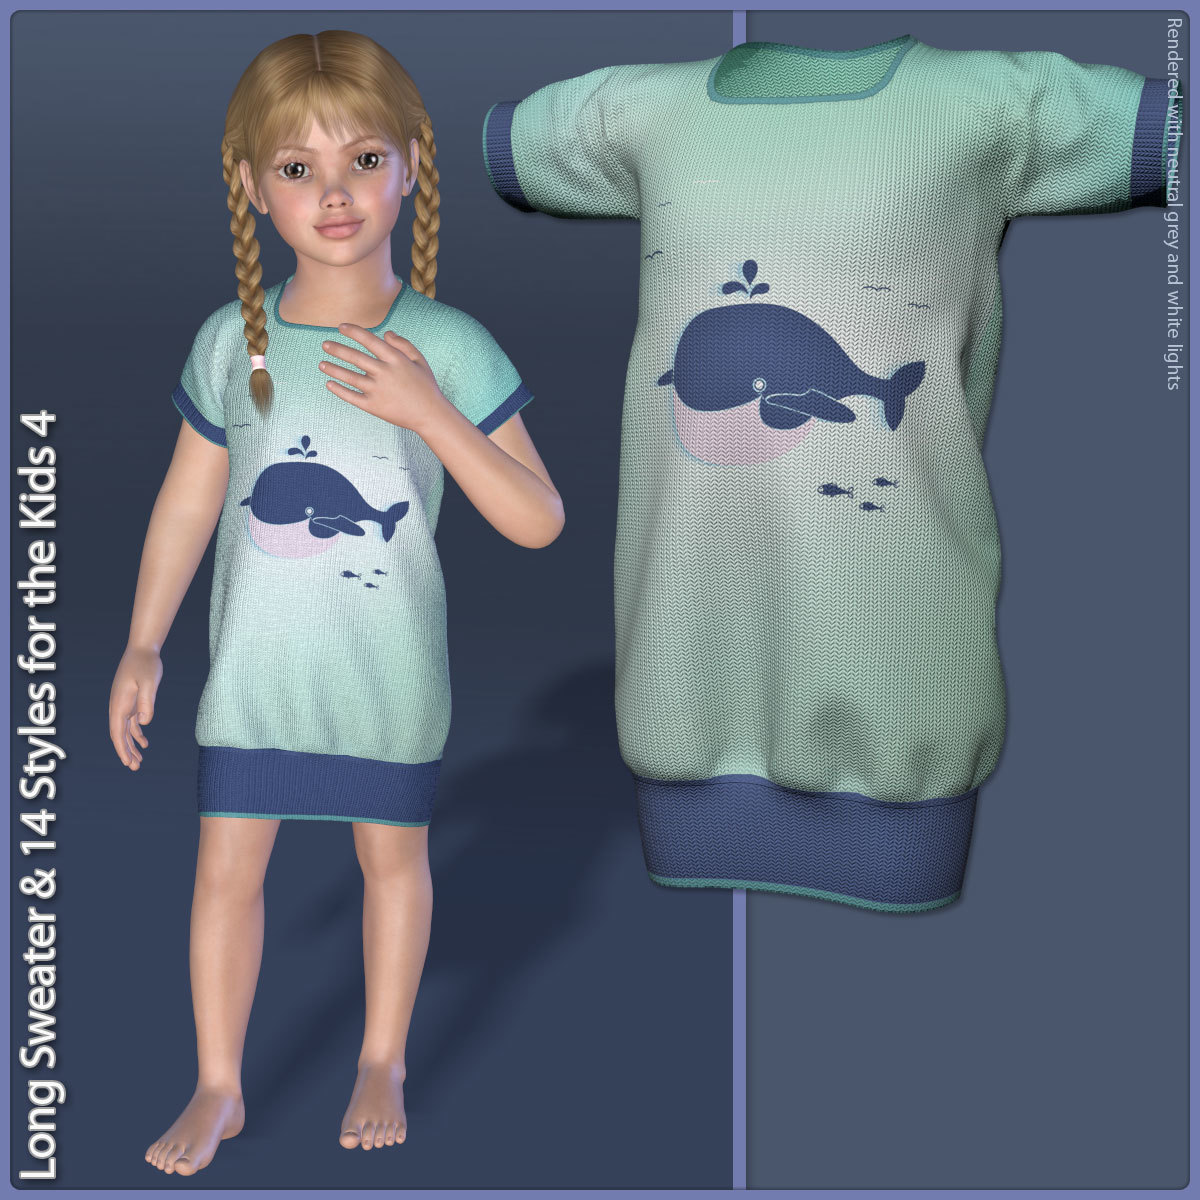 Long Sweater and 14 Styles for the Kids 4 by karanta